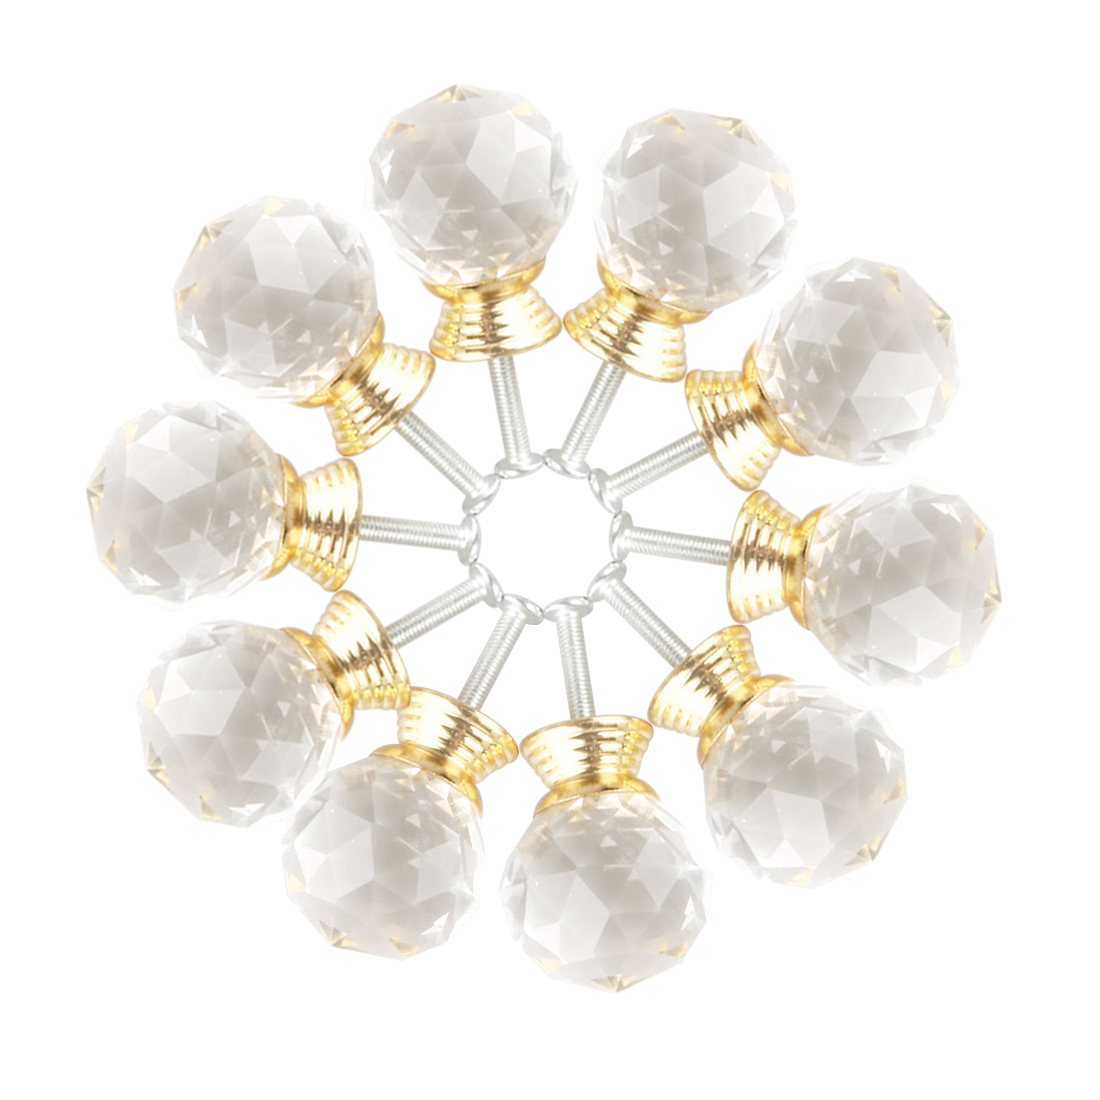 Diamond Crystal Glass Door Furniture Drawer Knobs PullHandle Cabinet 30mm Gold